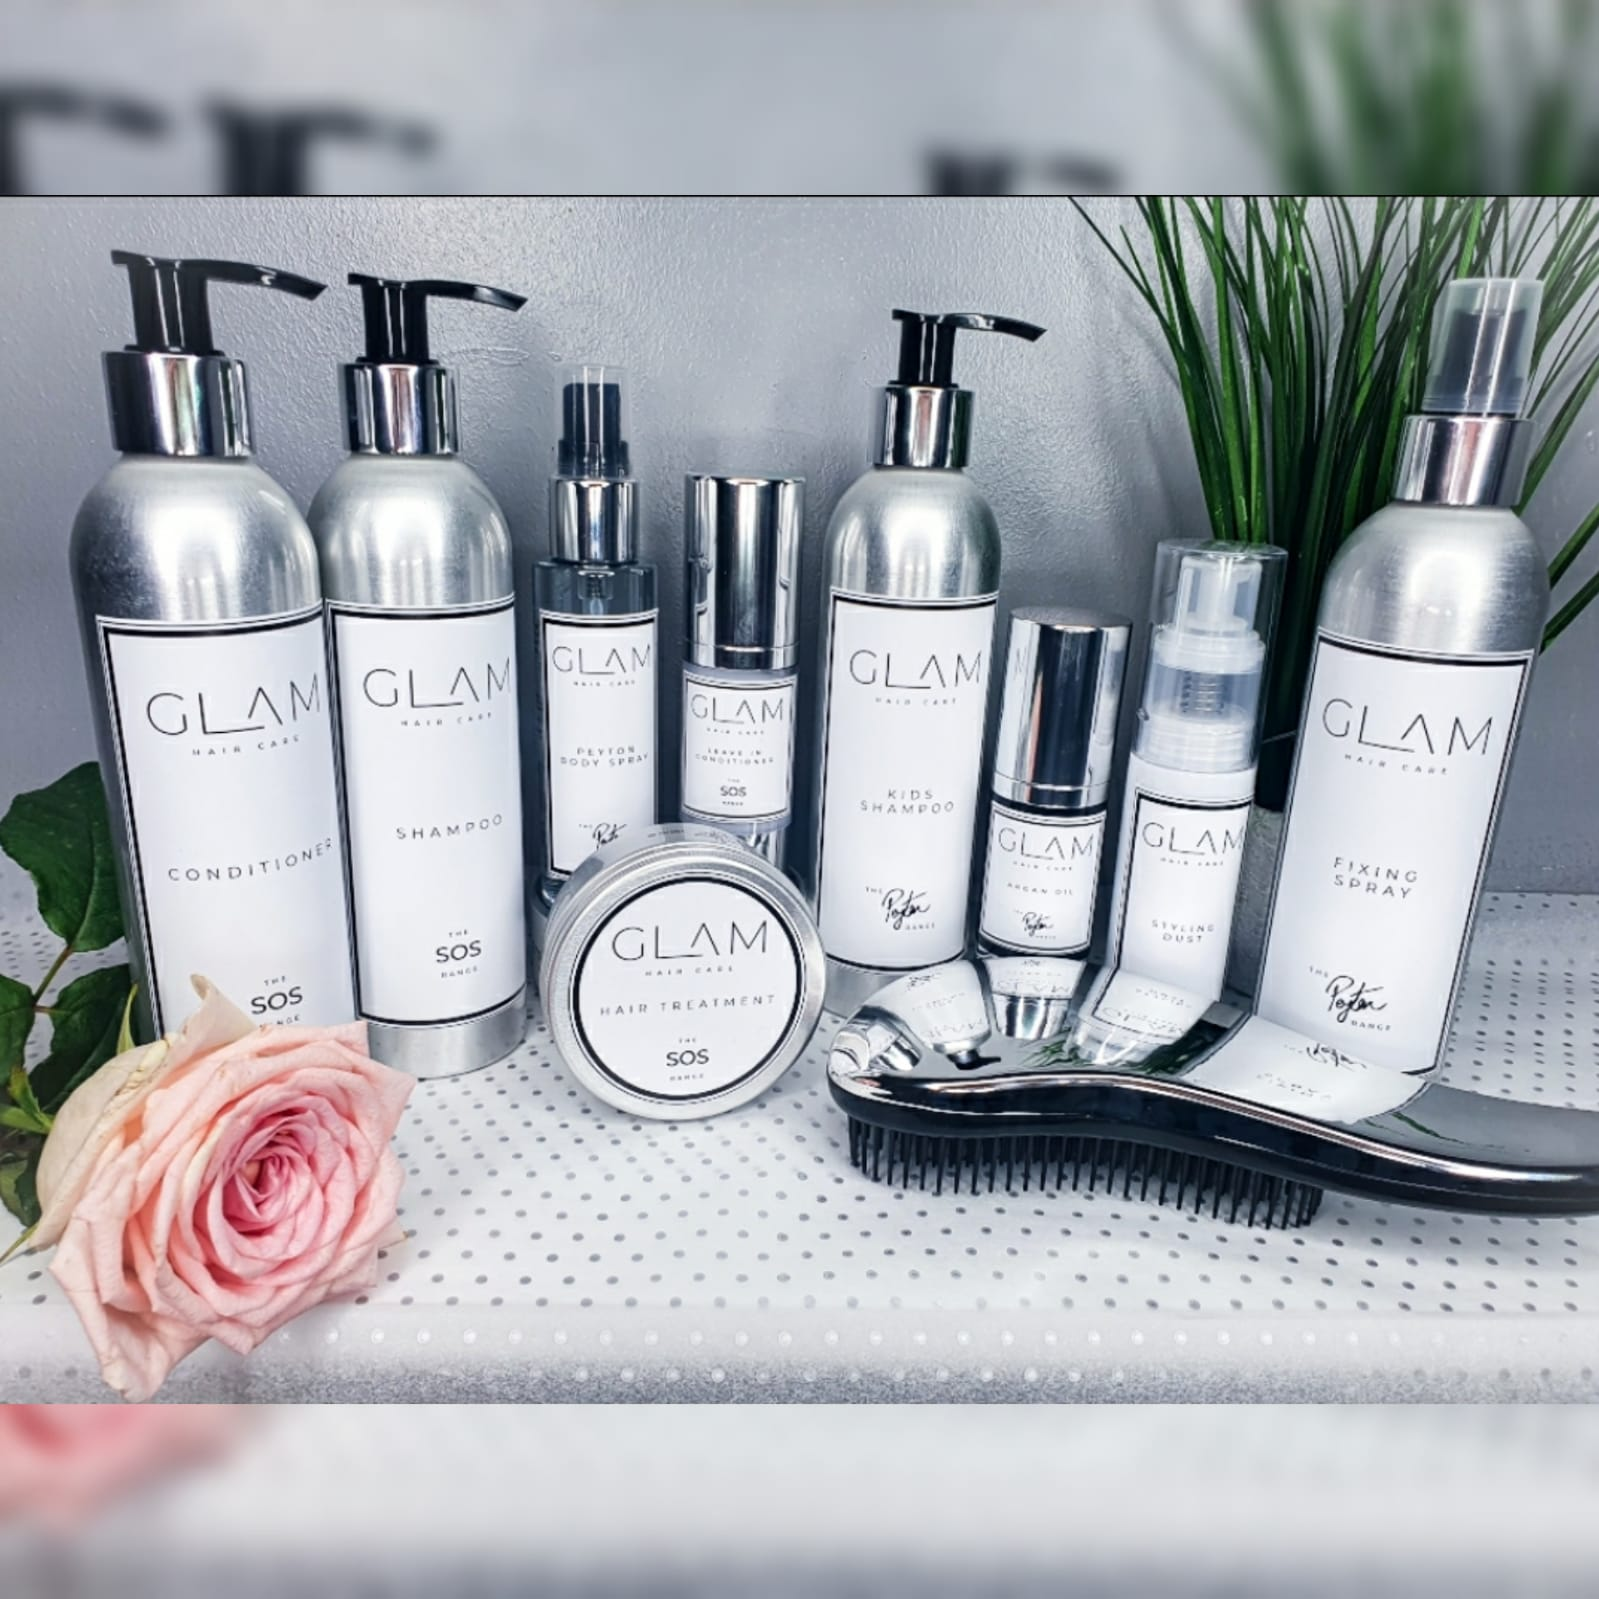 Glam's Premium Haircare and Beauty Range